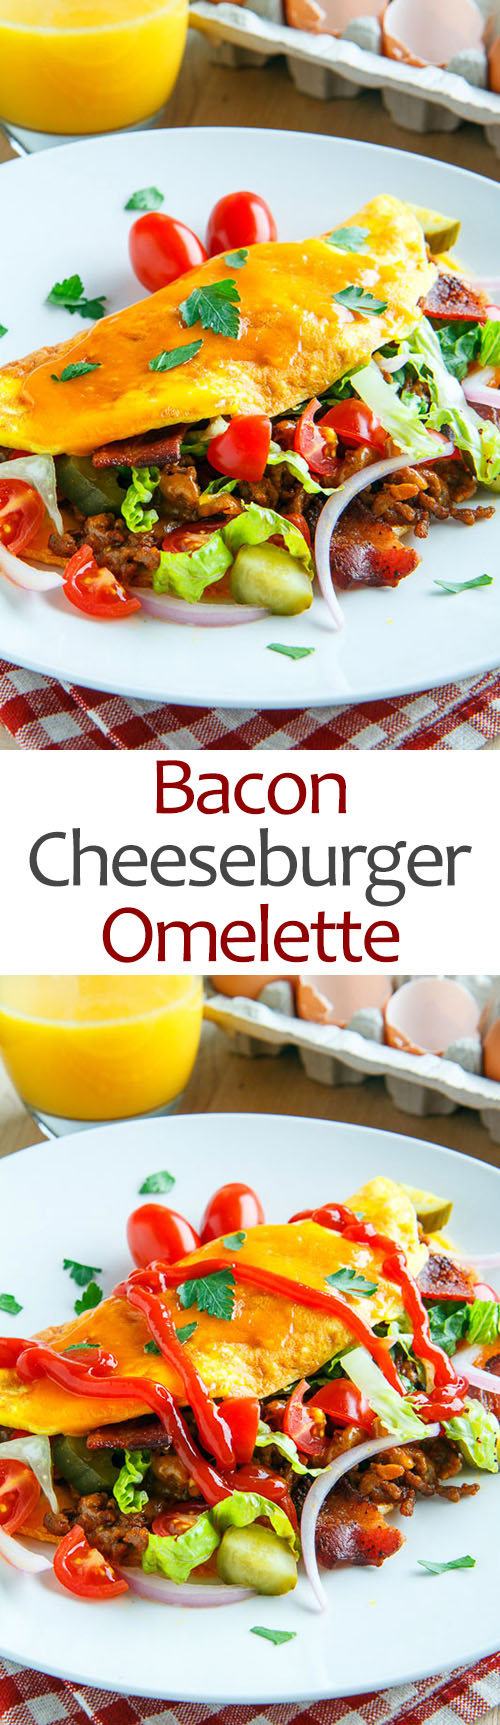 Bacon Cheeseburger Omelette